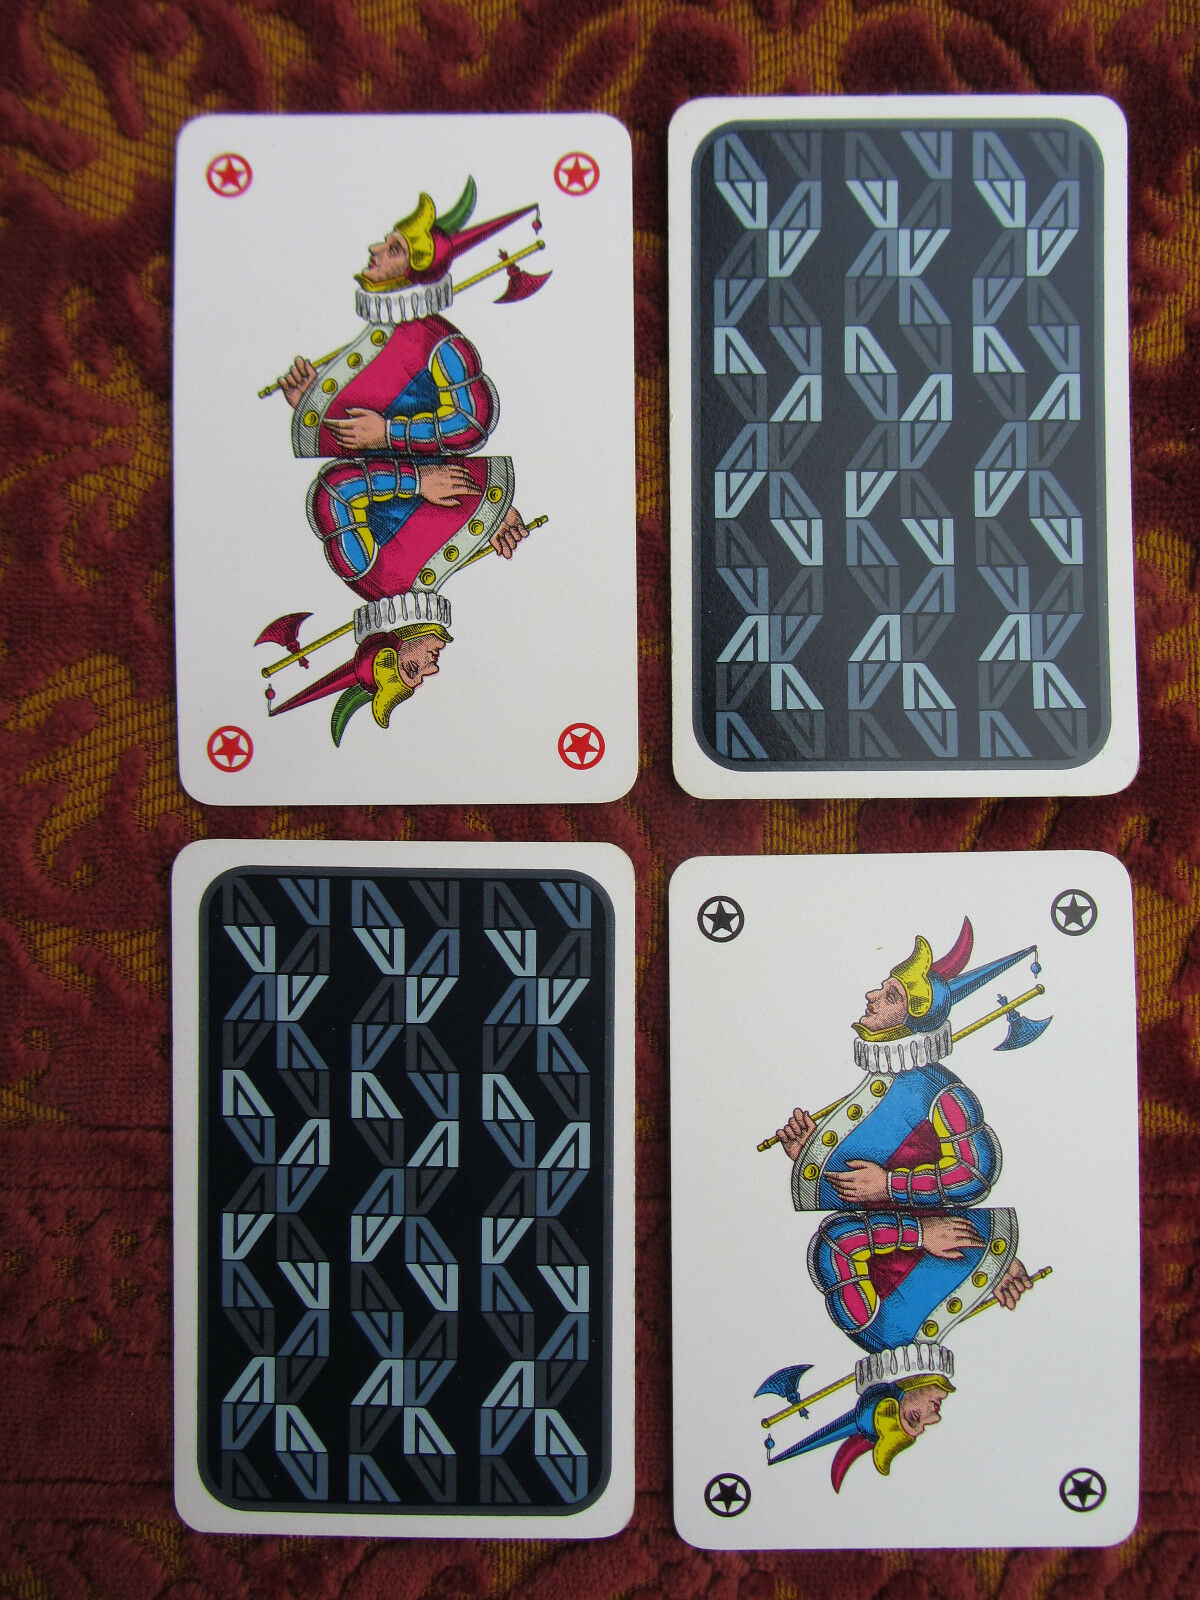 ANNI '70-CARTE DA GIOCO ALITALIA-FIGURE PARTICOLARI-70s UNUSUAL PLAYING CARDS